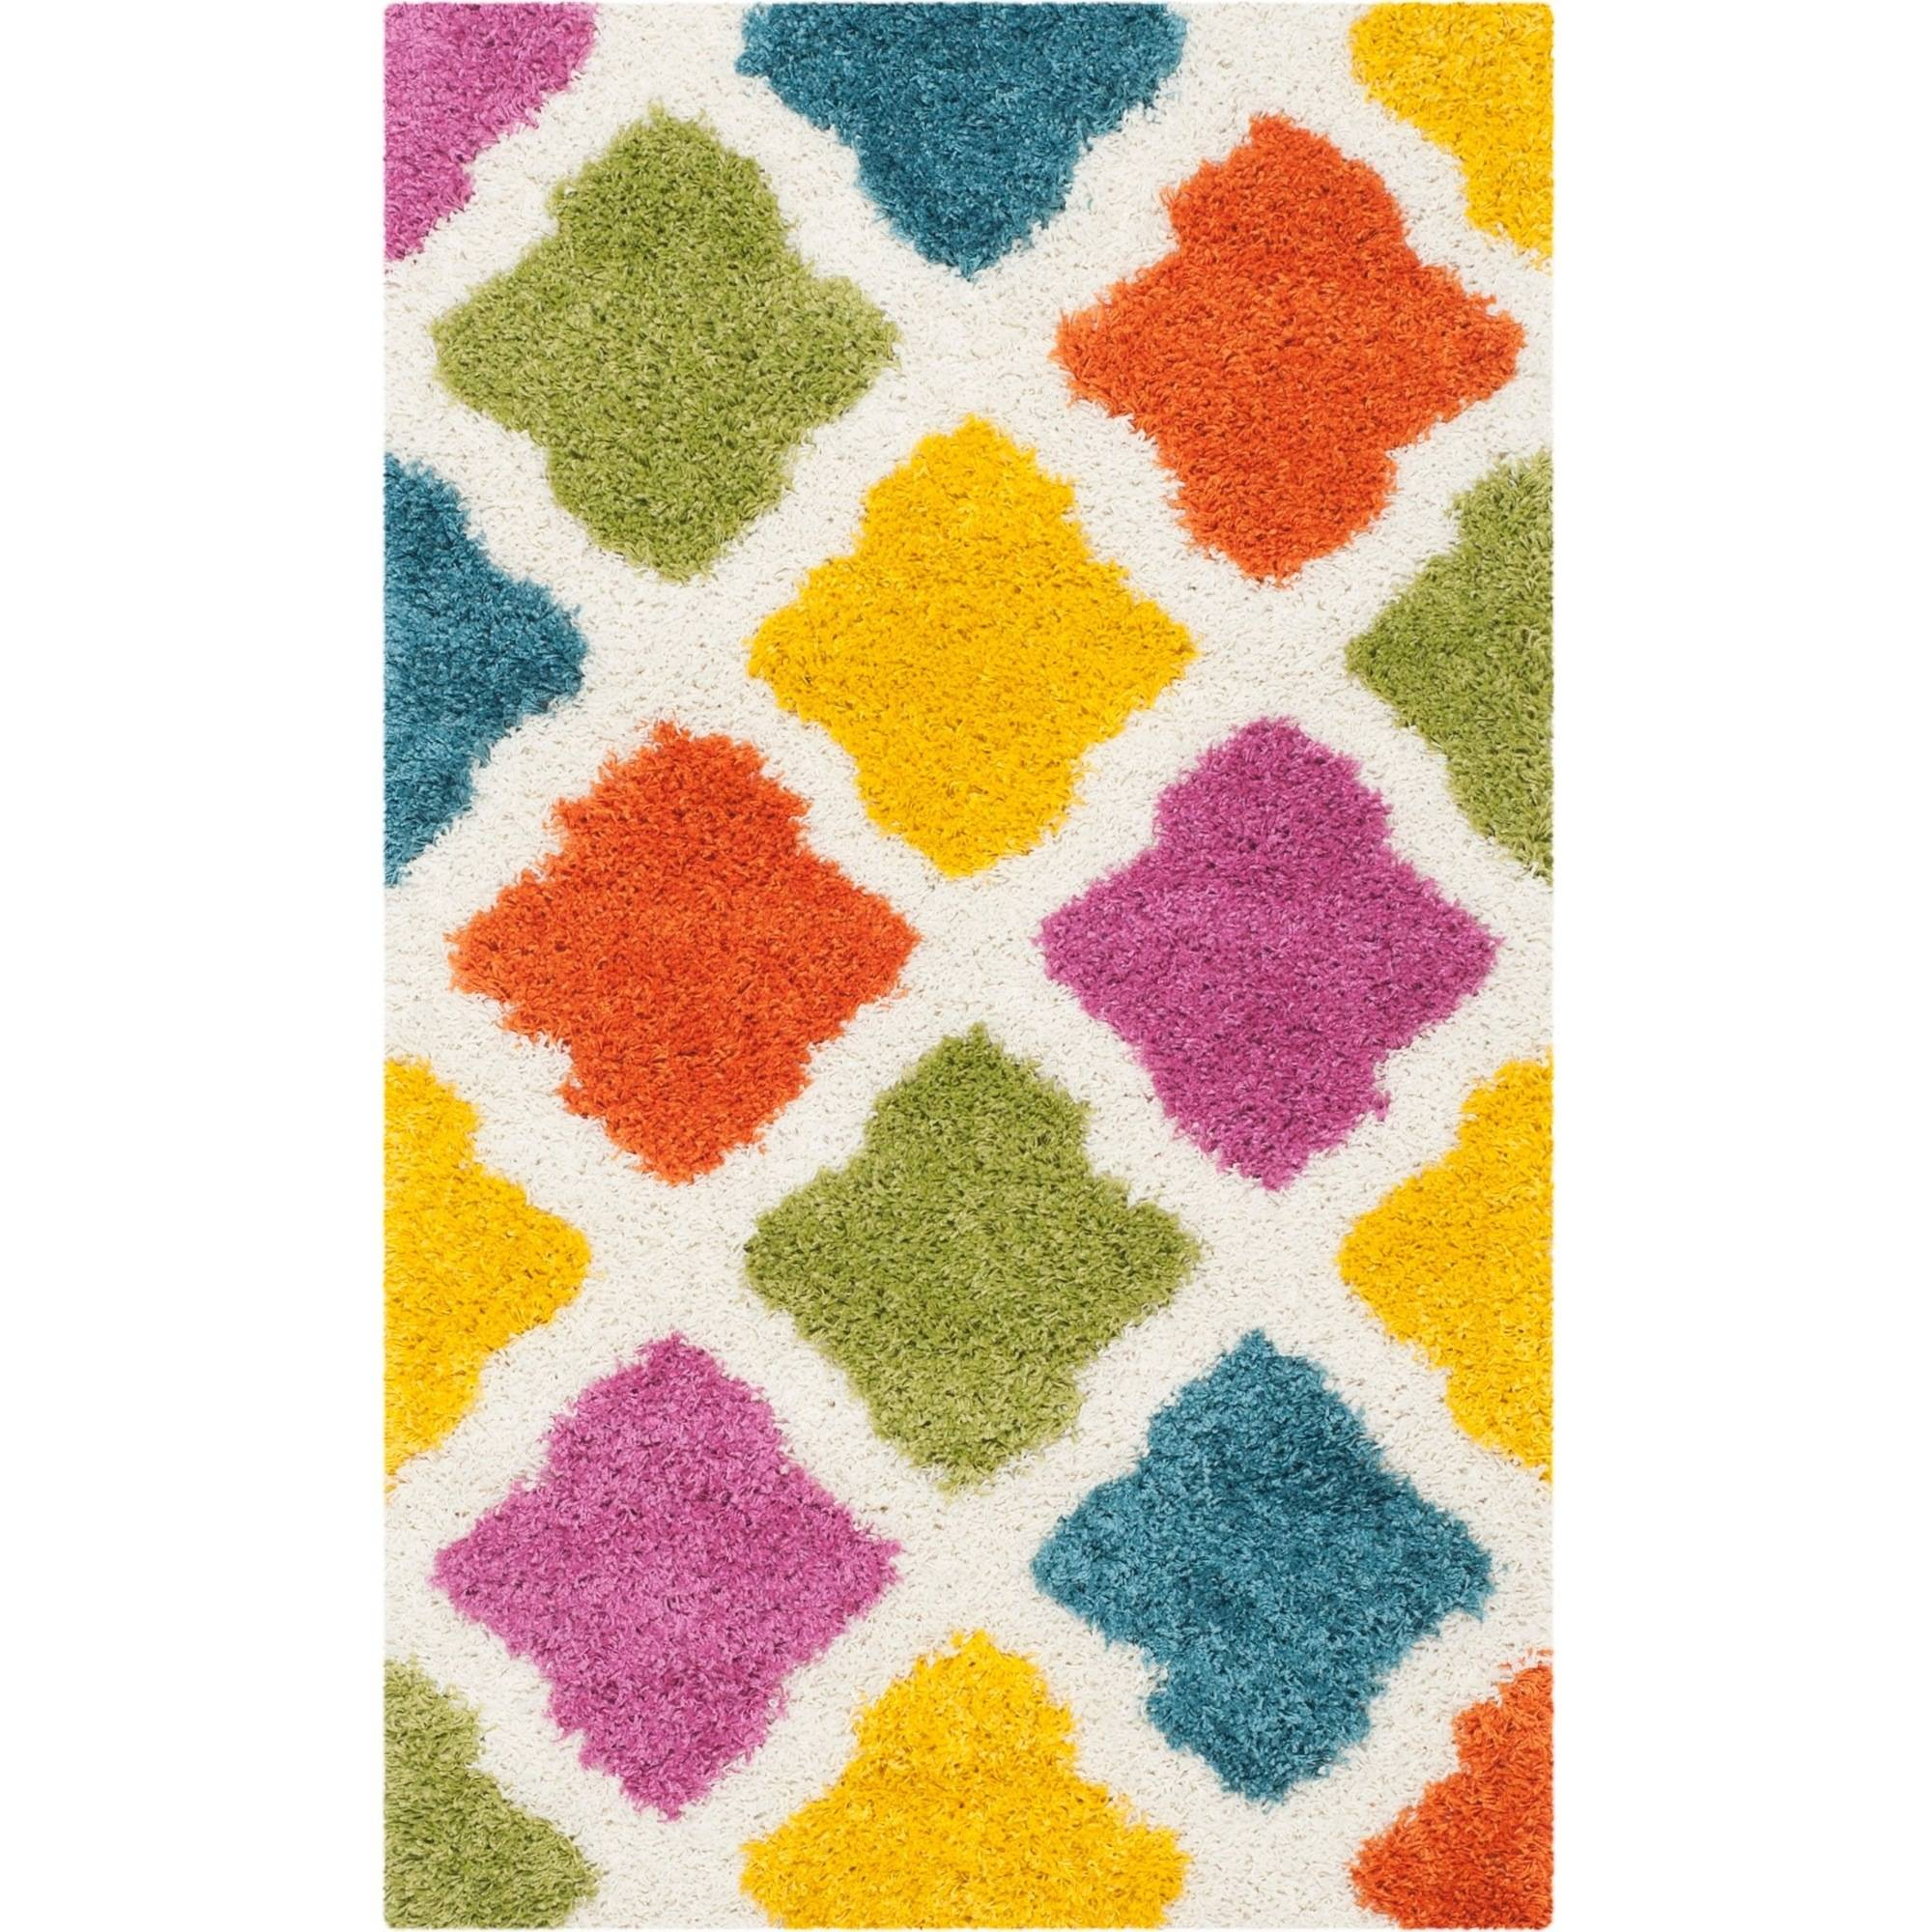 Safavieh Shag Kids Jaycob Power Loomed Area Rug, Ivory/Multi